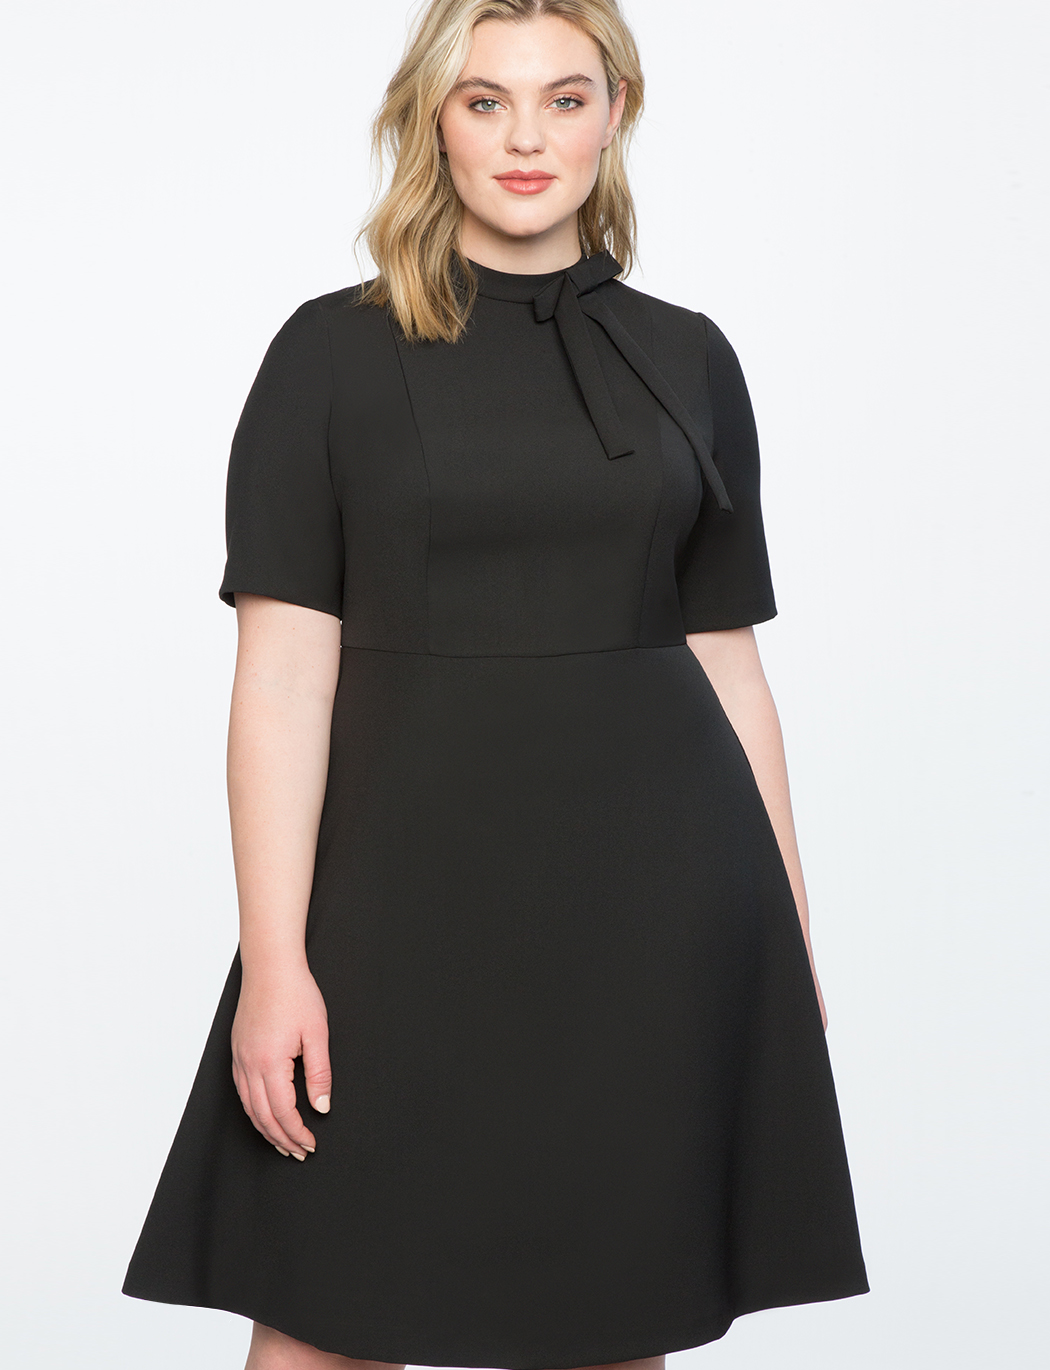 Fit And Flare Work Dress With Bow | Women\'s Plus Size Dresses | ELOQUII